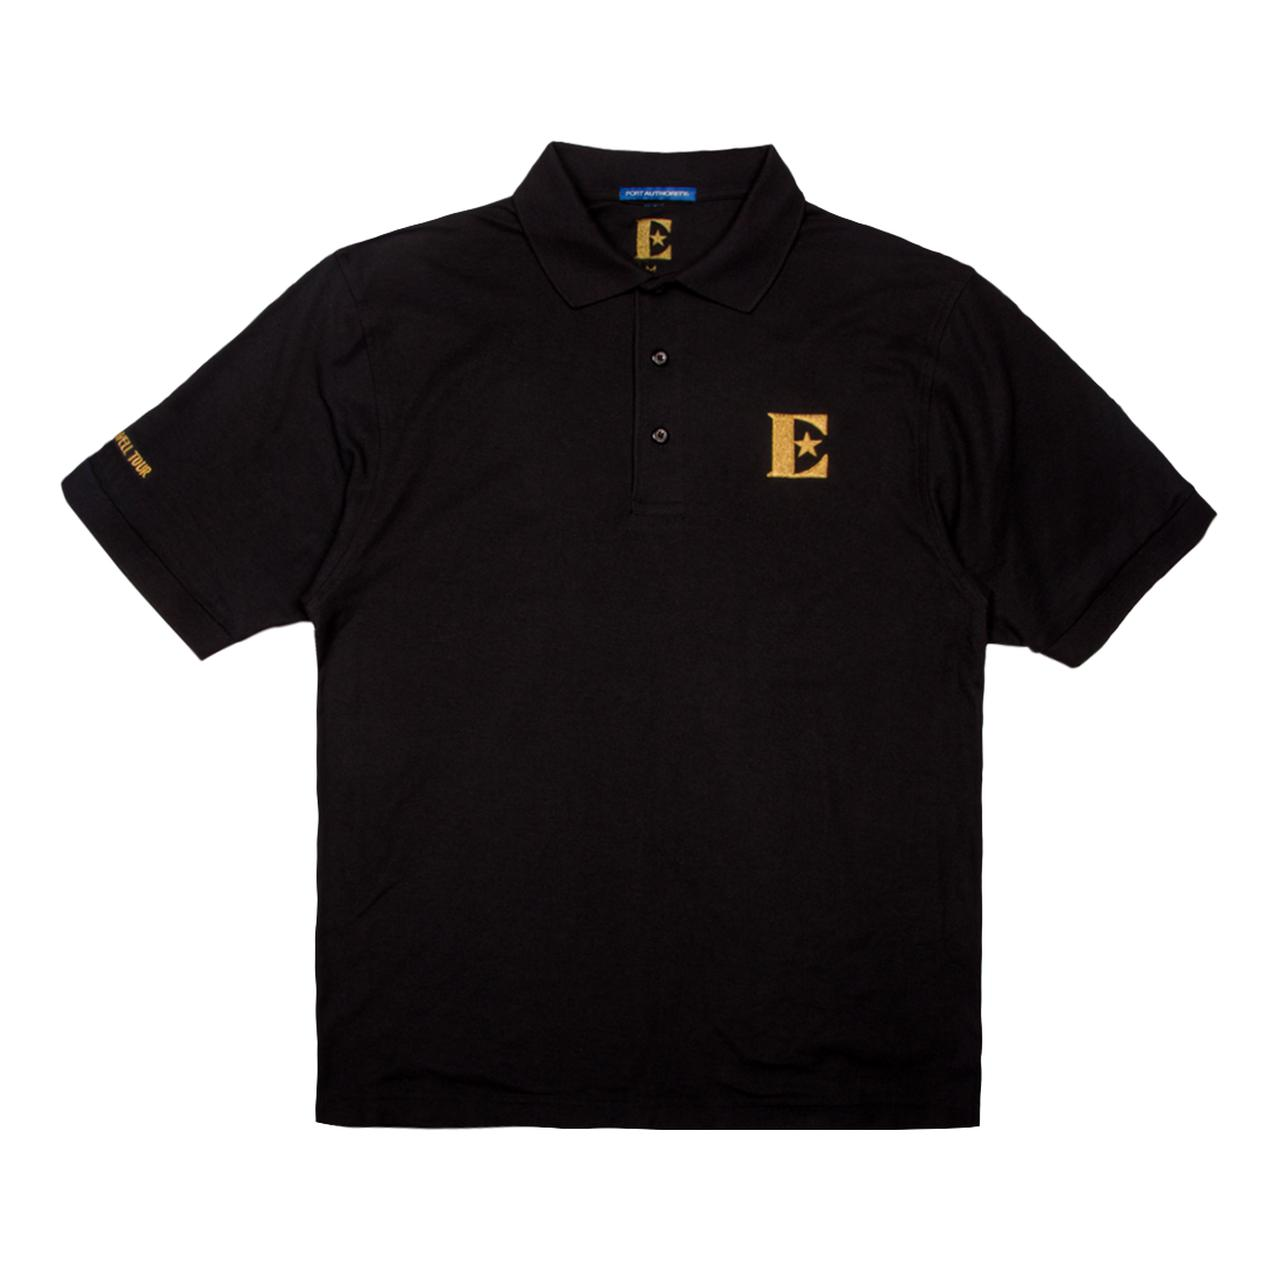 Elton John Gold Embroidered Polo Shirt